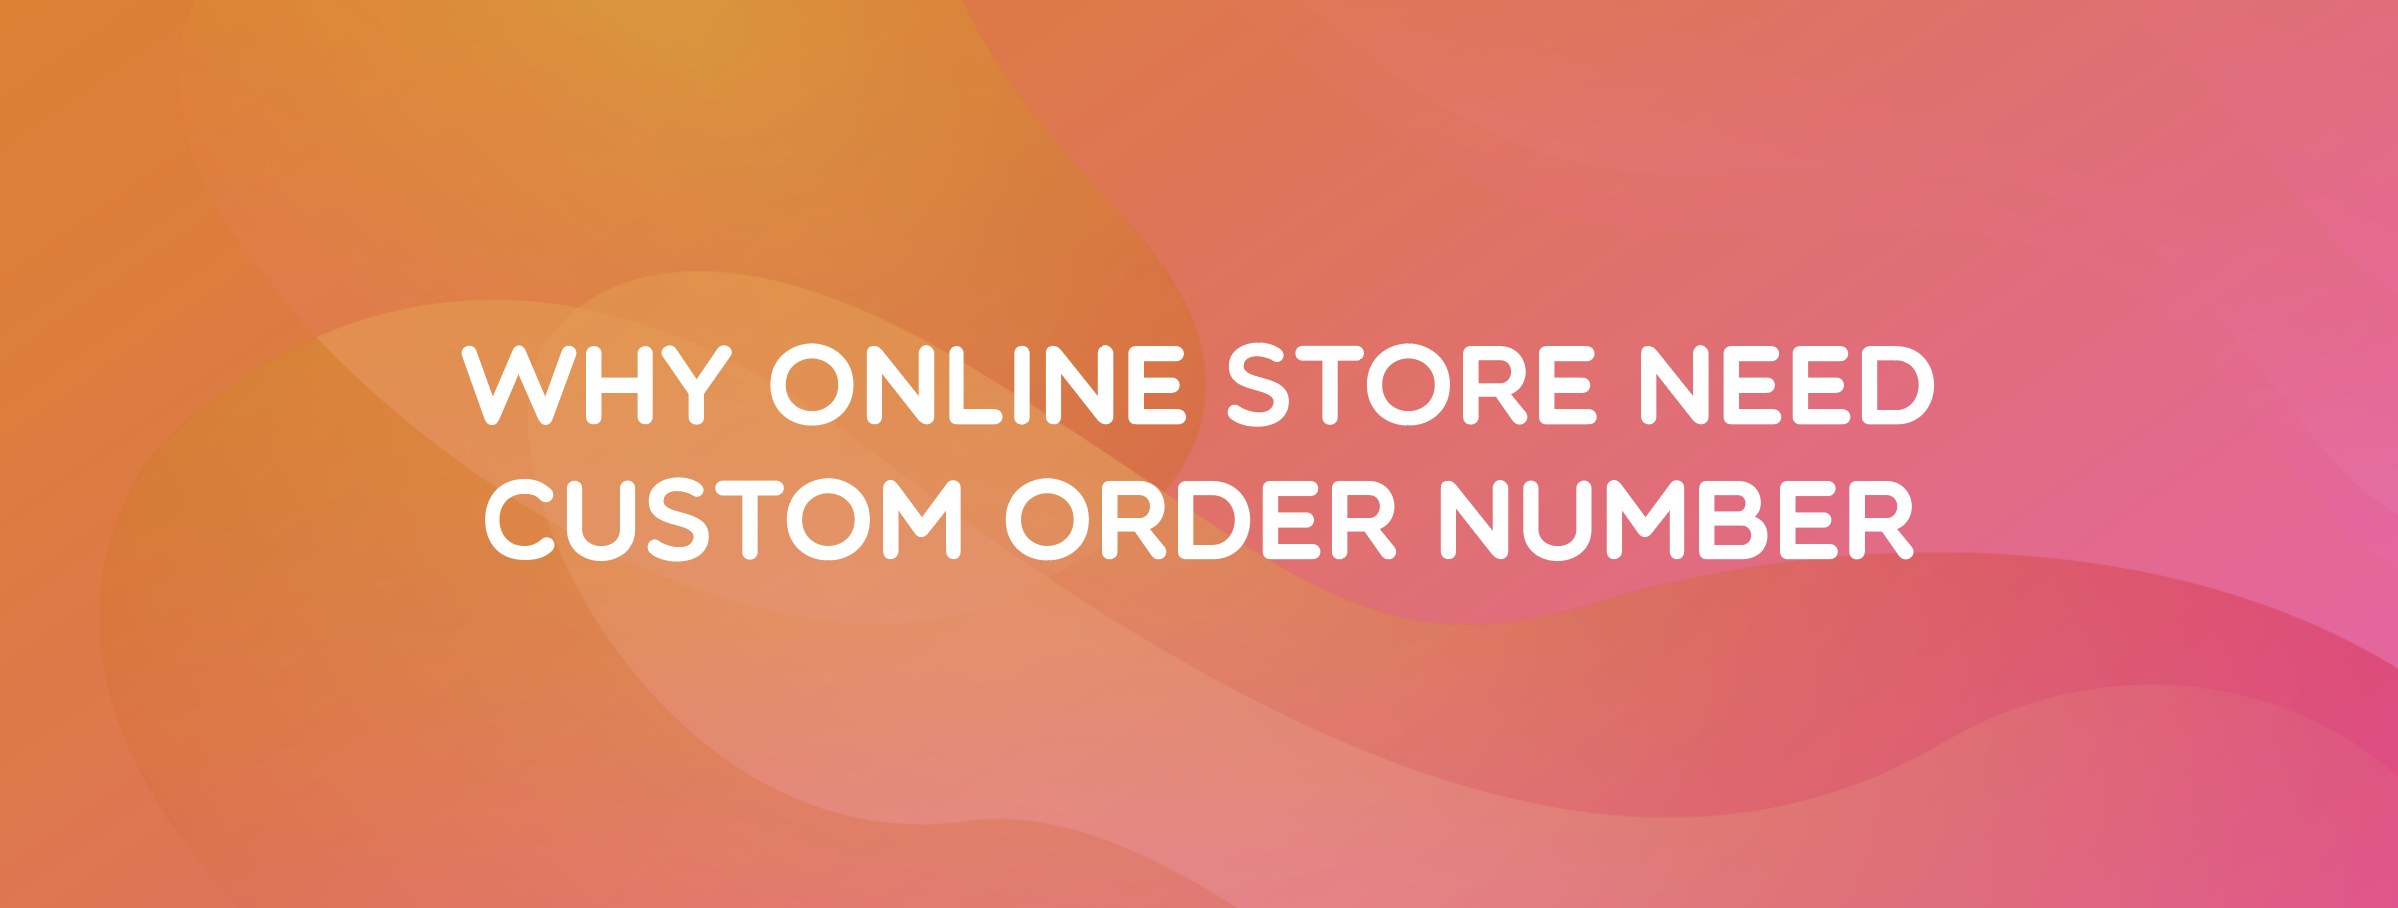 Why online store need Custom Order Number